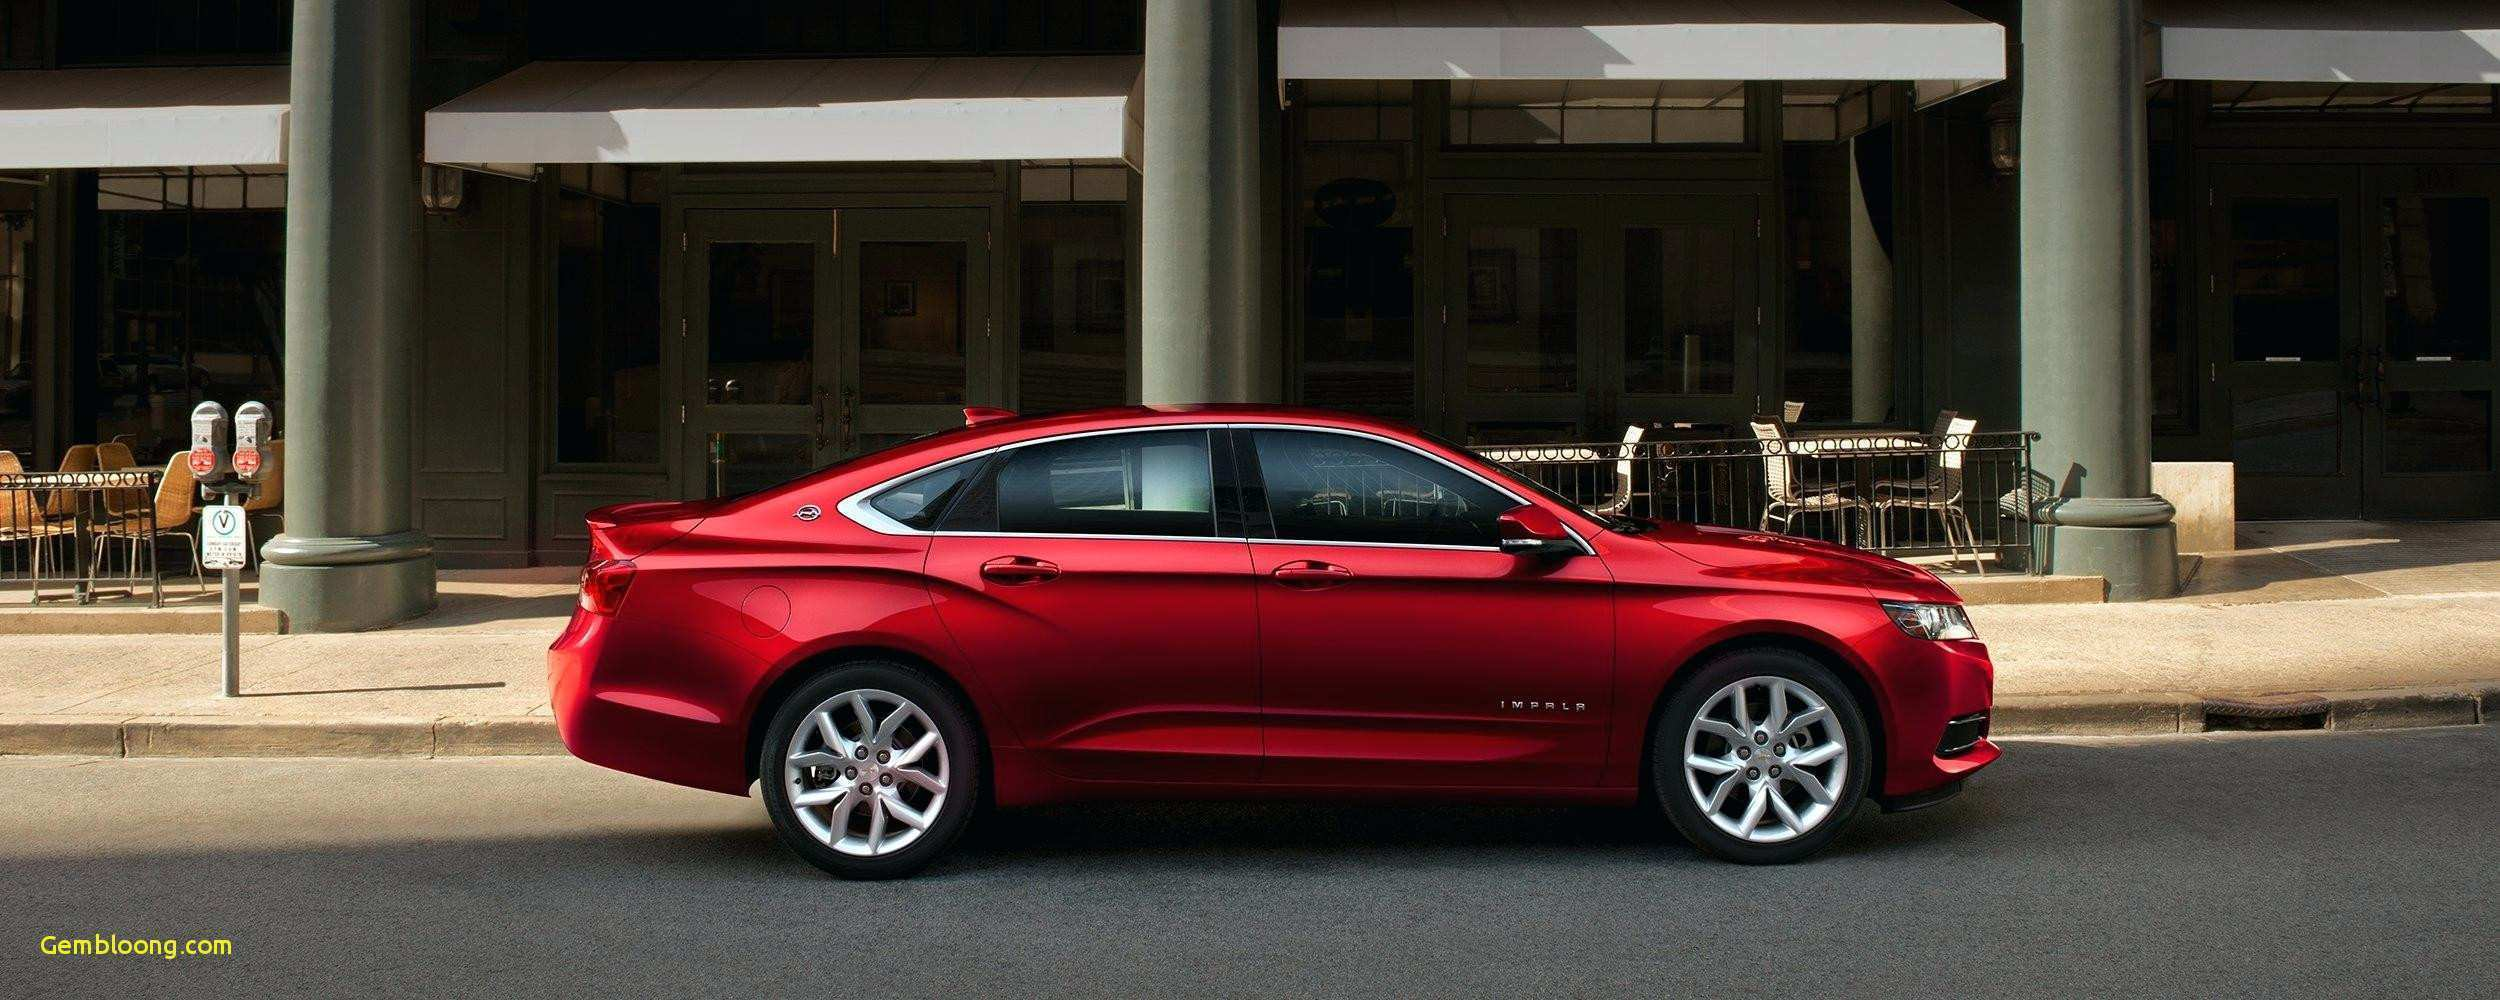 60 Best Review 2020 Chevy Impala Ss Ltz Coupe New Review by 2020 Chevy Impala Ss Ltz Coupe